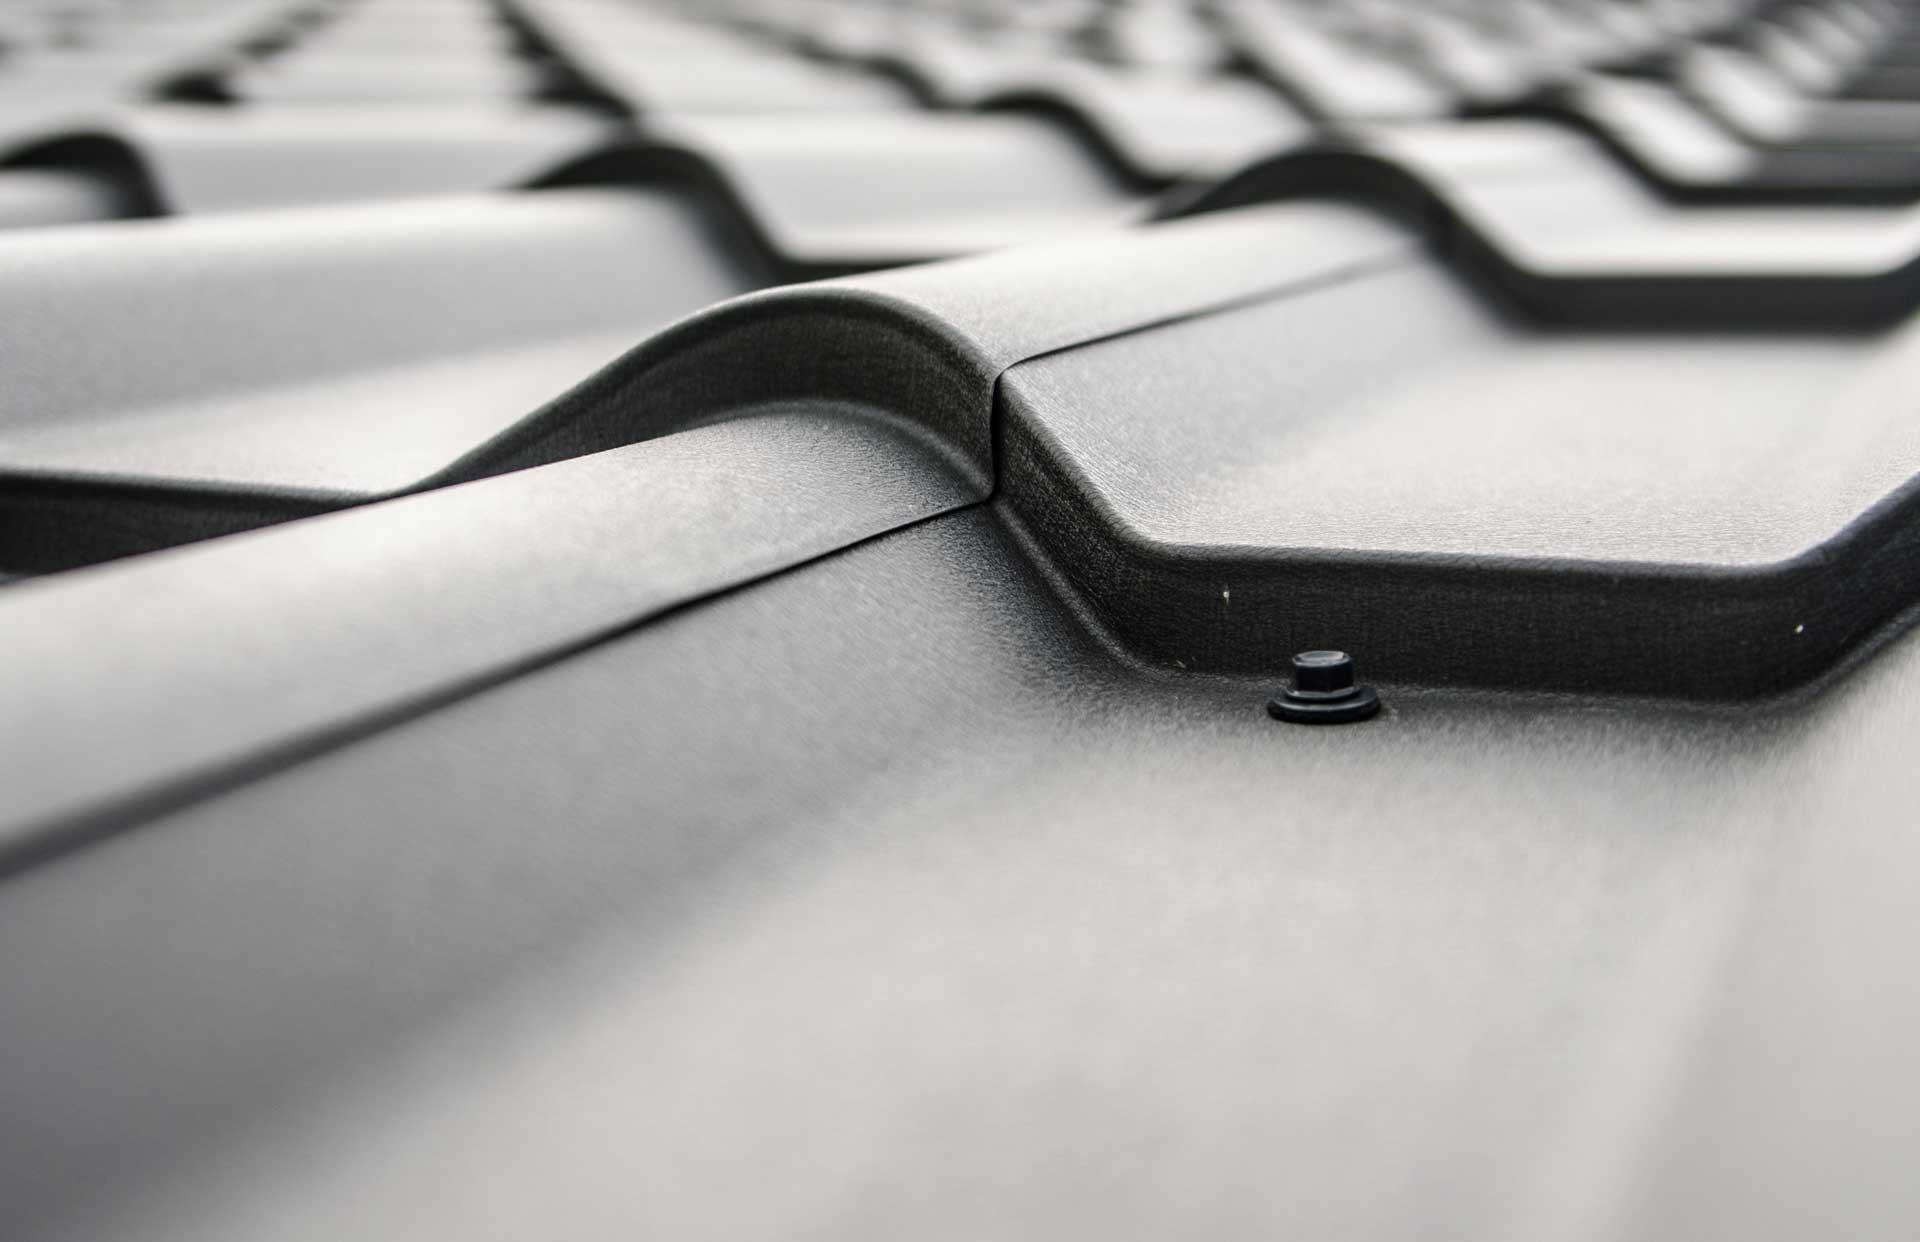 close up view of metal roofing shingles